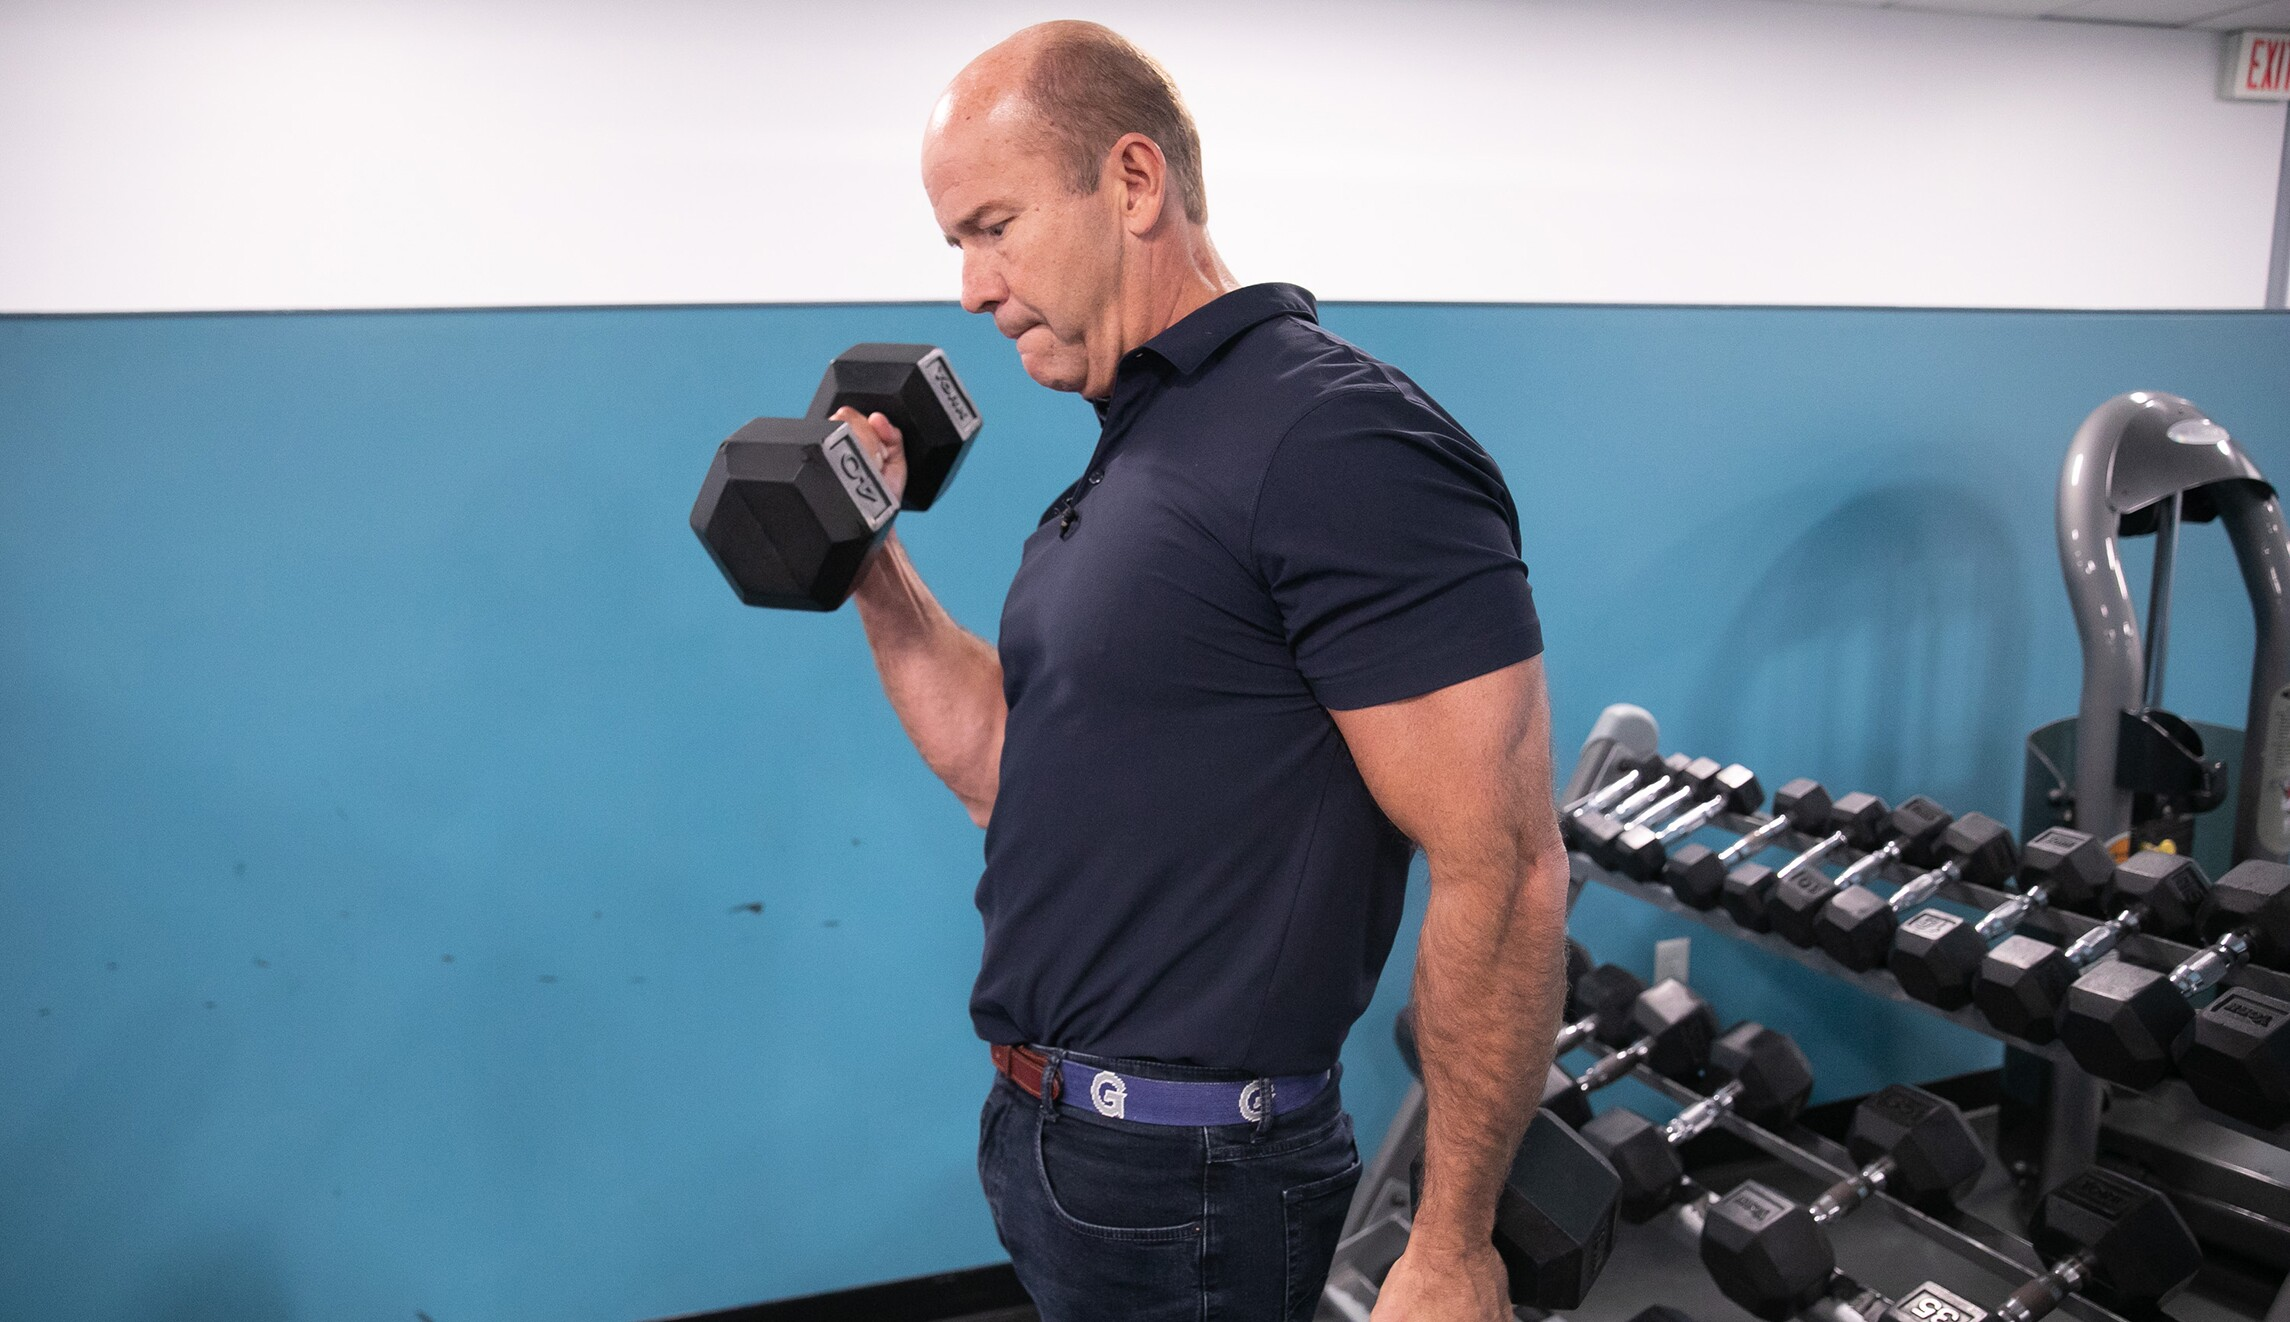 The strongest 2020 Democrat: John Delaney deadlifts 350 lbs and works out constantly in Iowa hotels